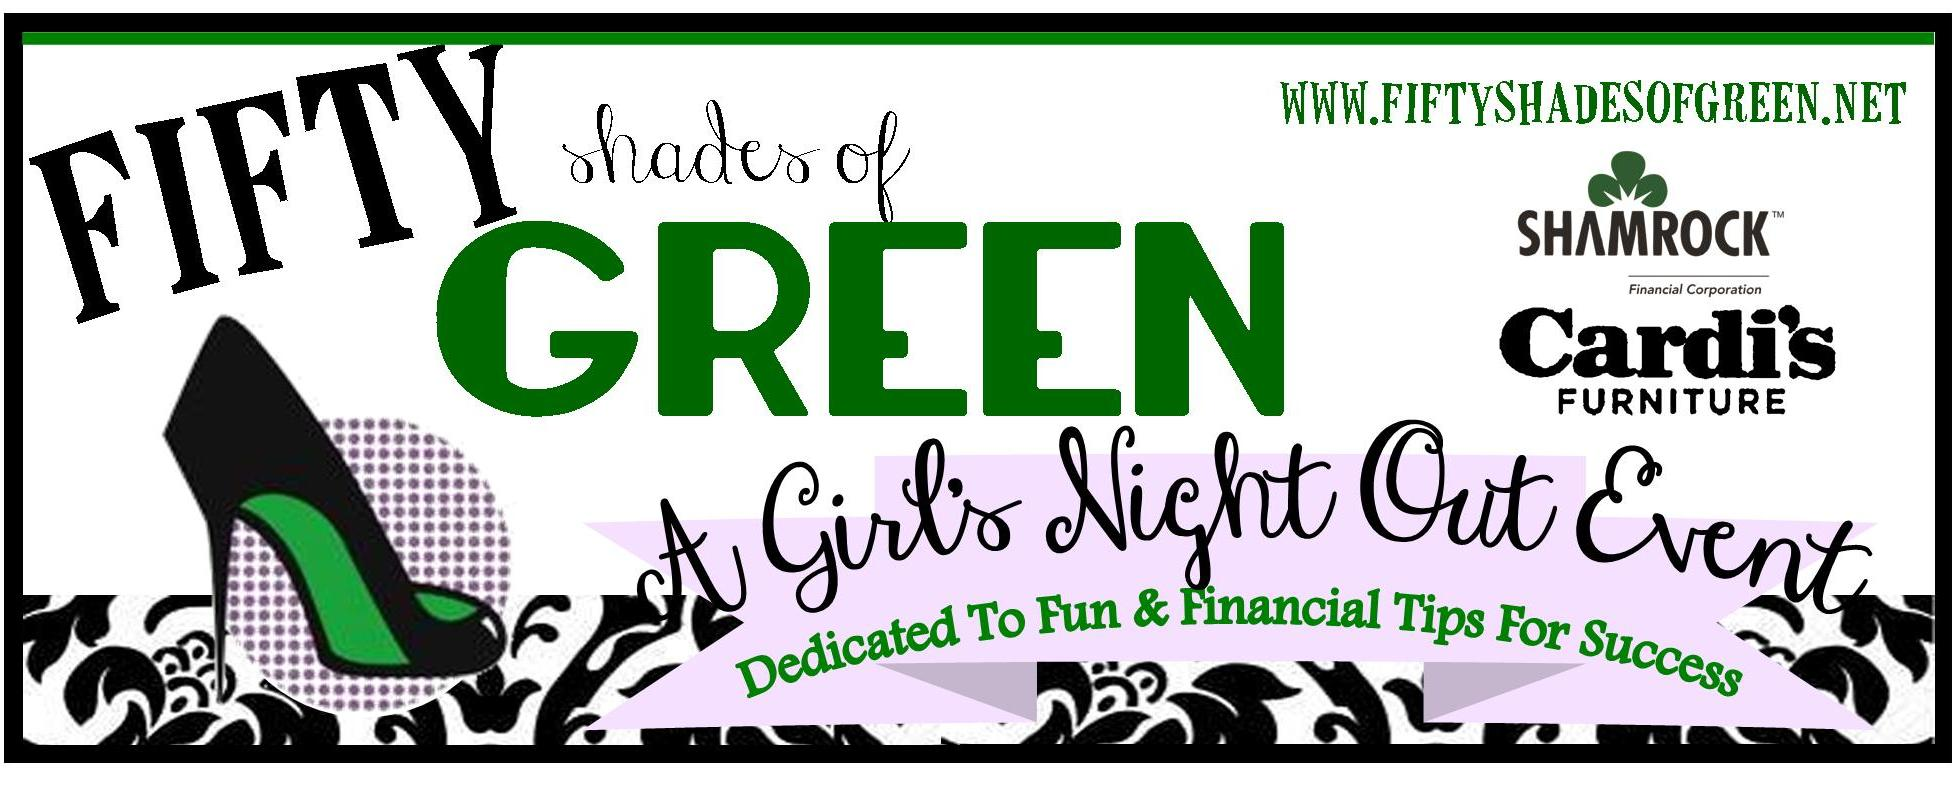 Fifty Shades of Green Girl's Night Out Event